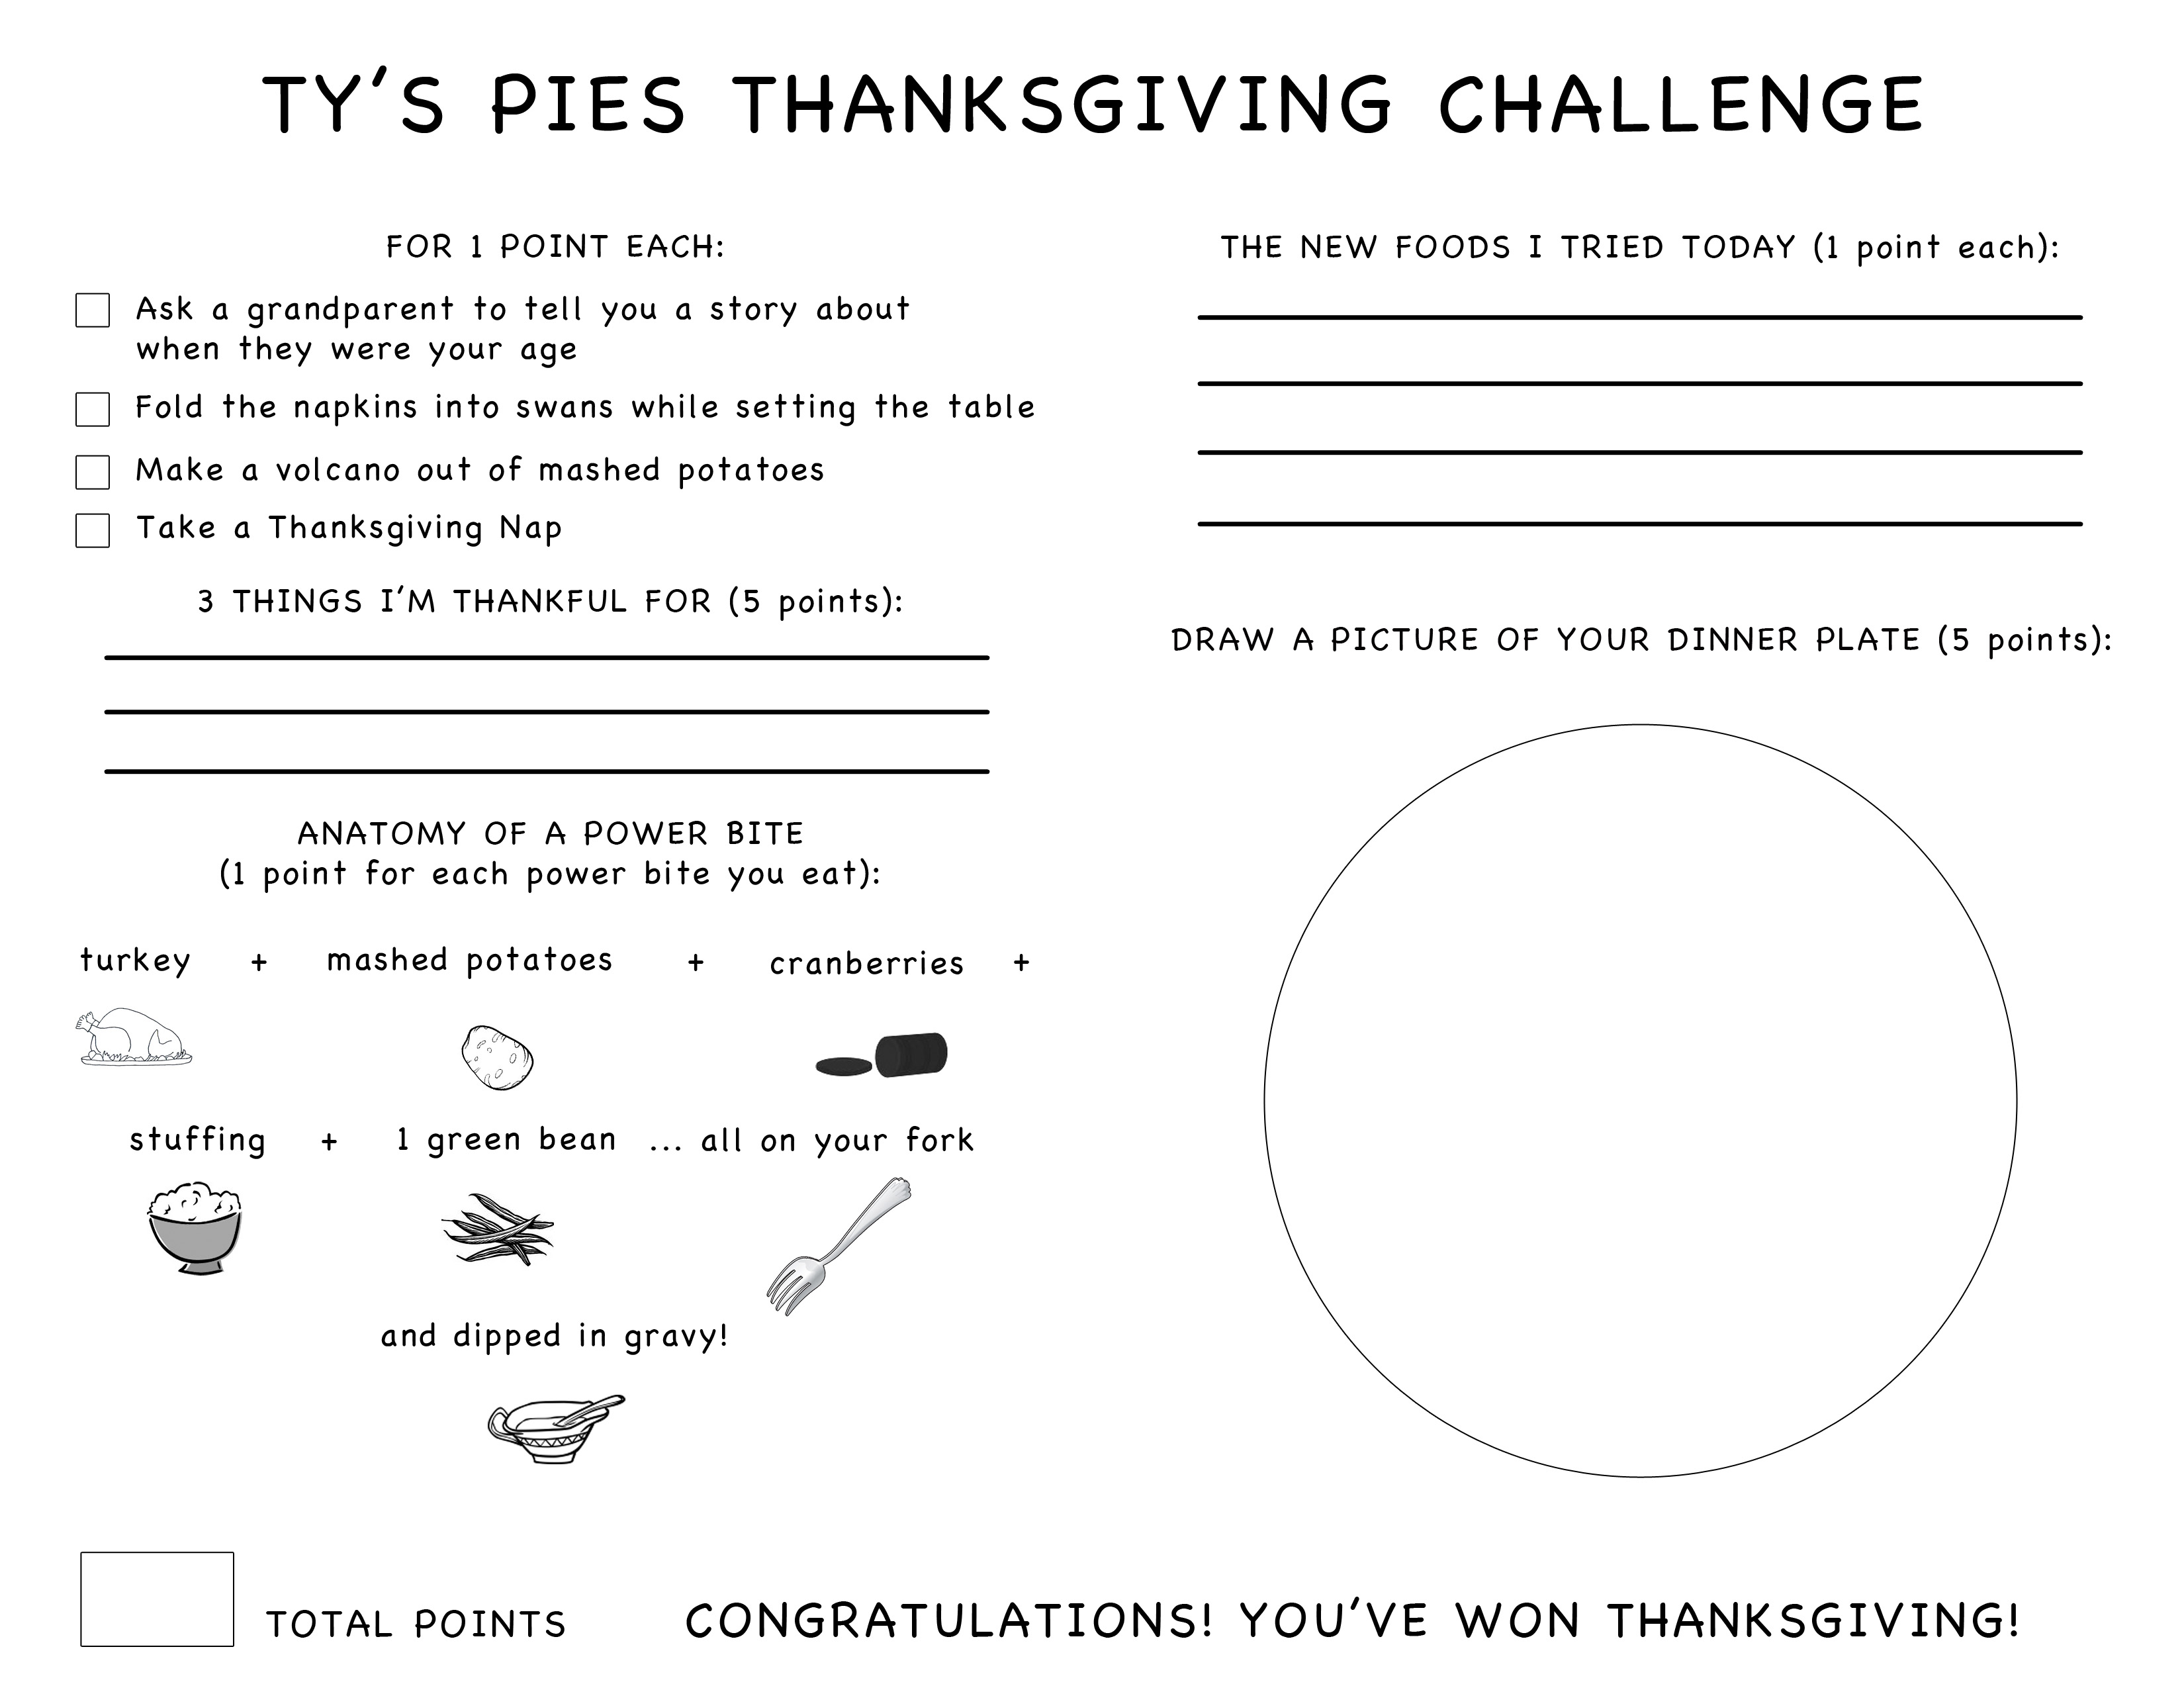 Ty's Thanksgiving Challenge